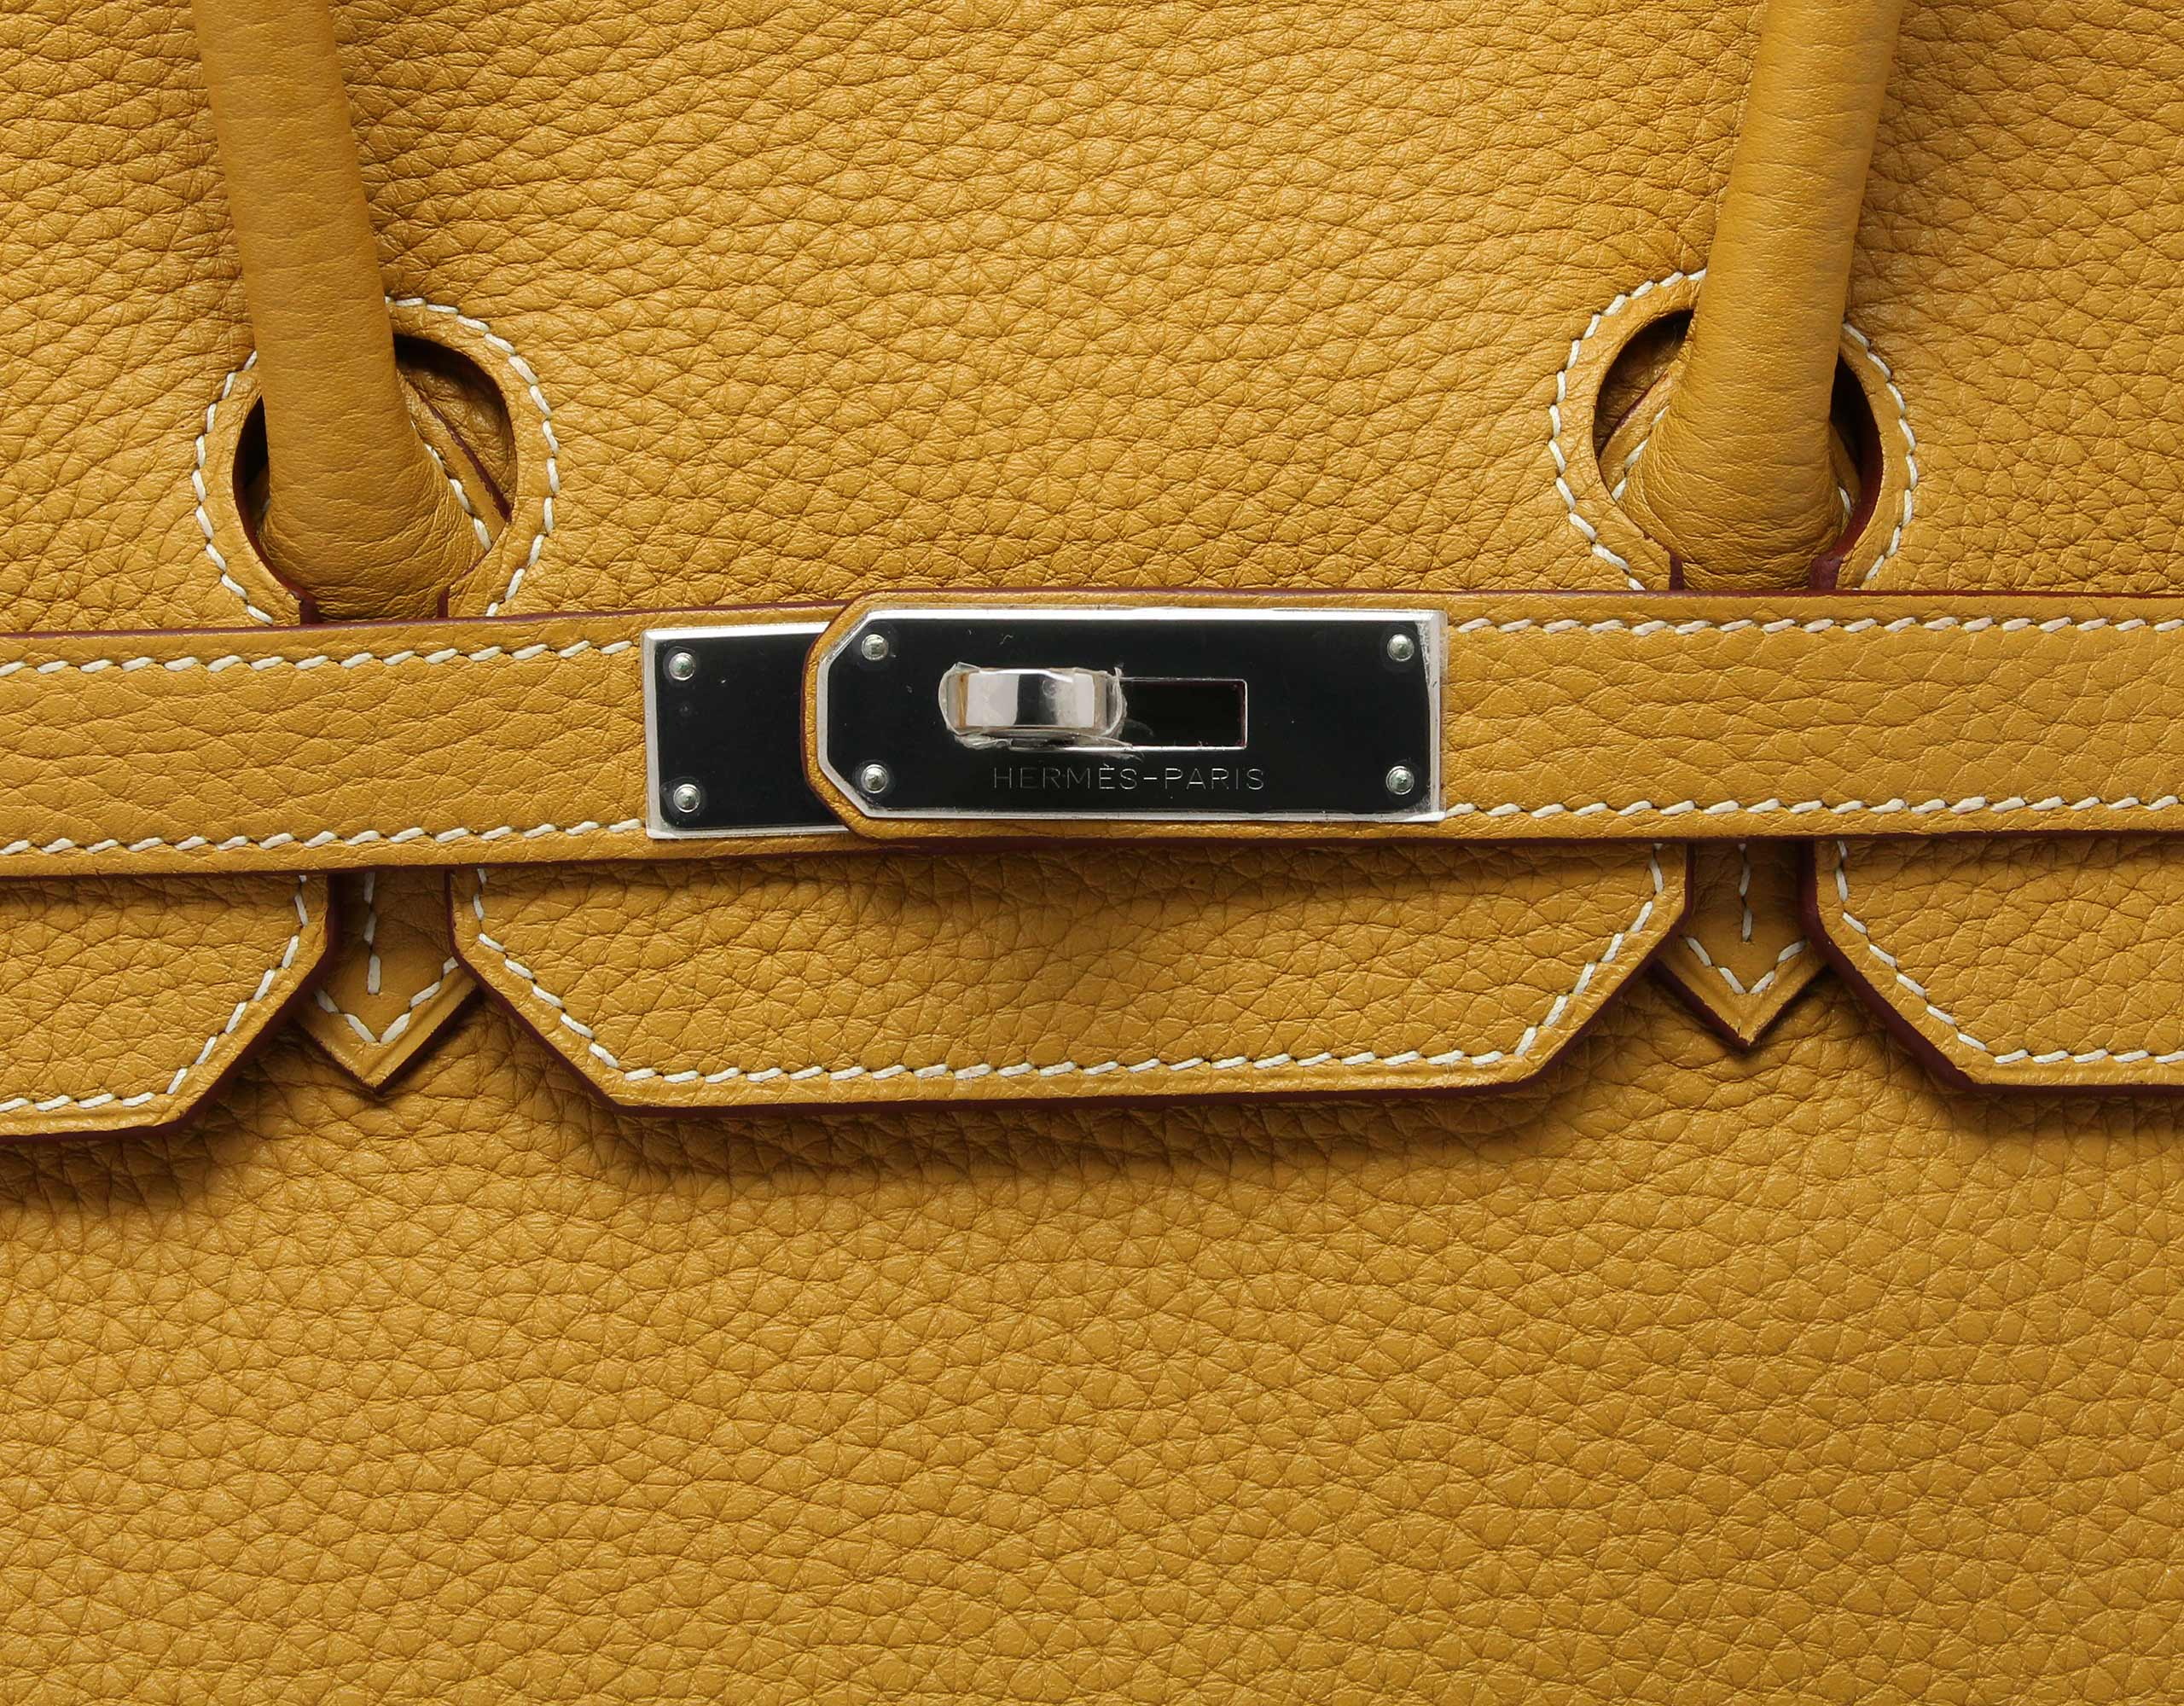 how much does birkin cost - Hermes 35cm Birkin Bag in Clemence | Bags Of Luxury